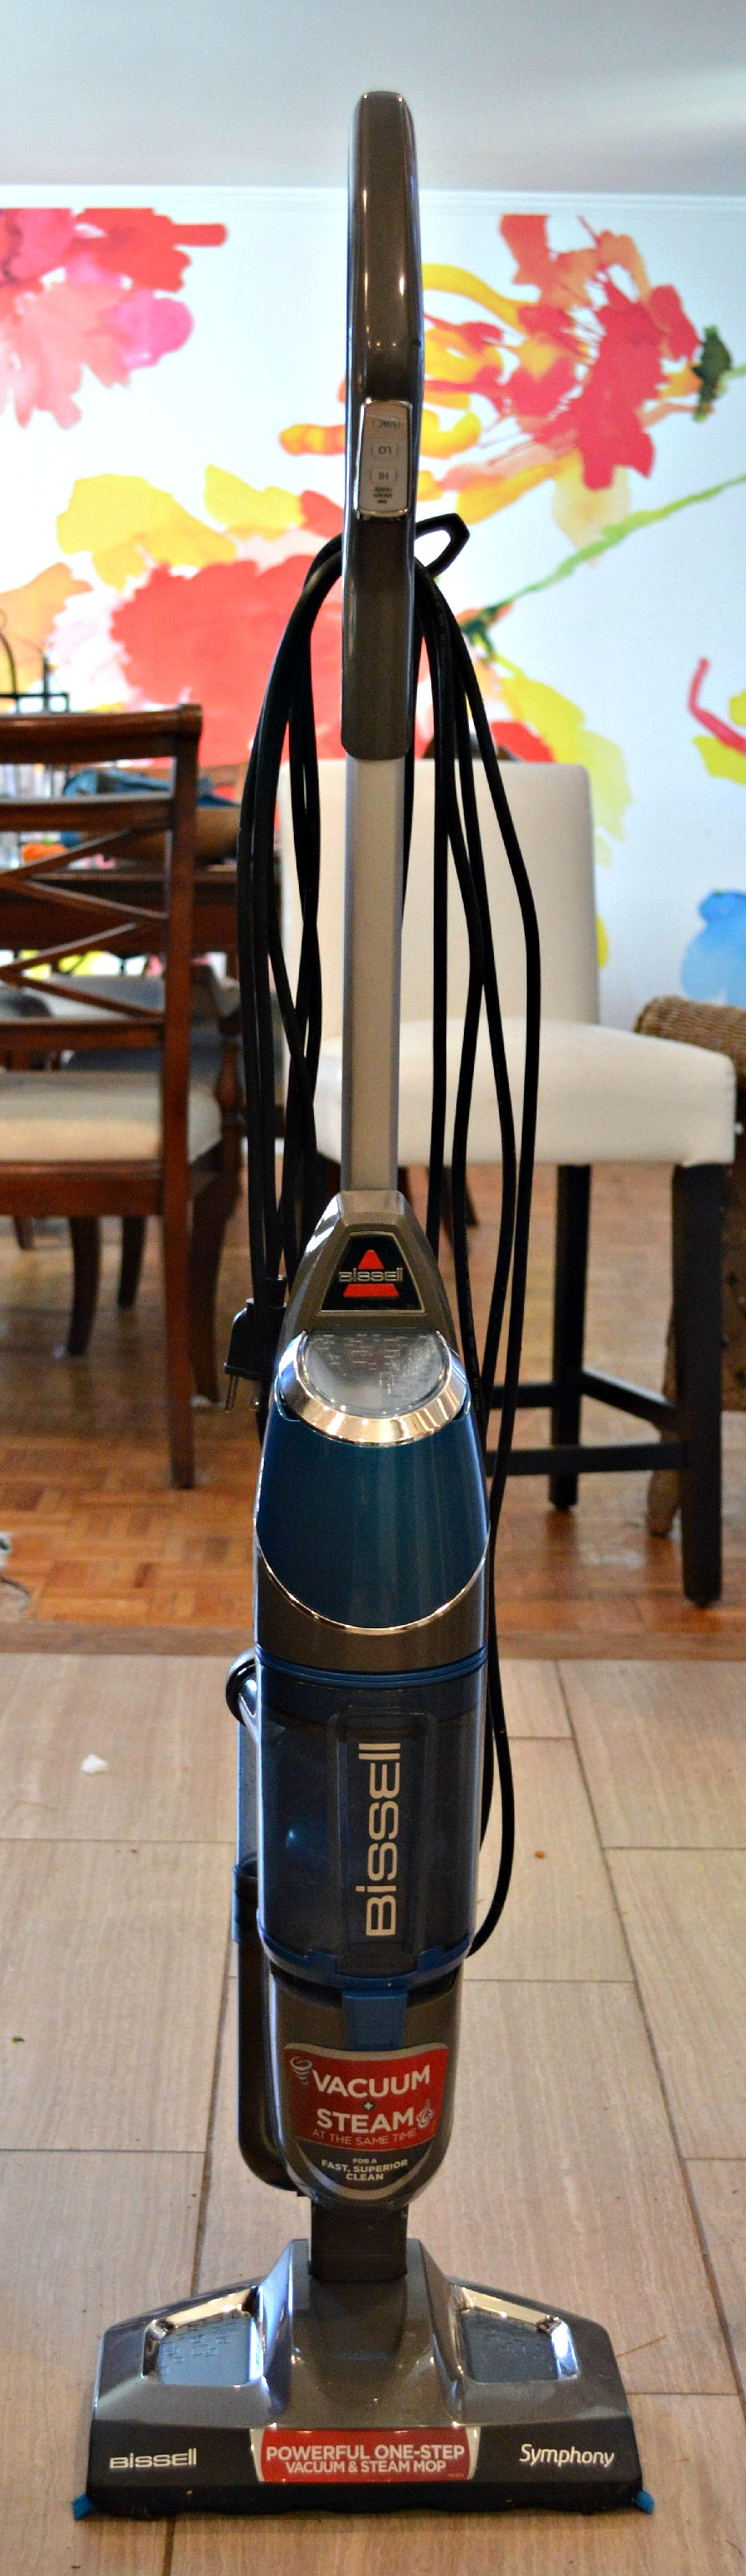 Bissell Symphony Bagless Vacuum and Steam Mop